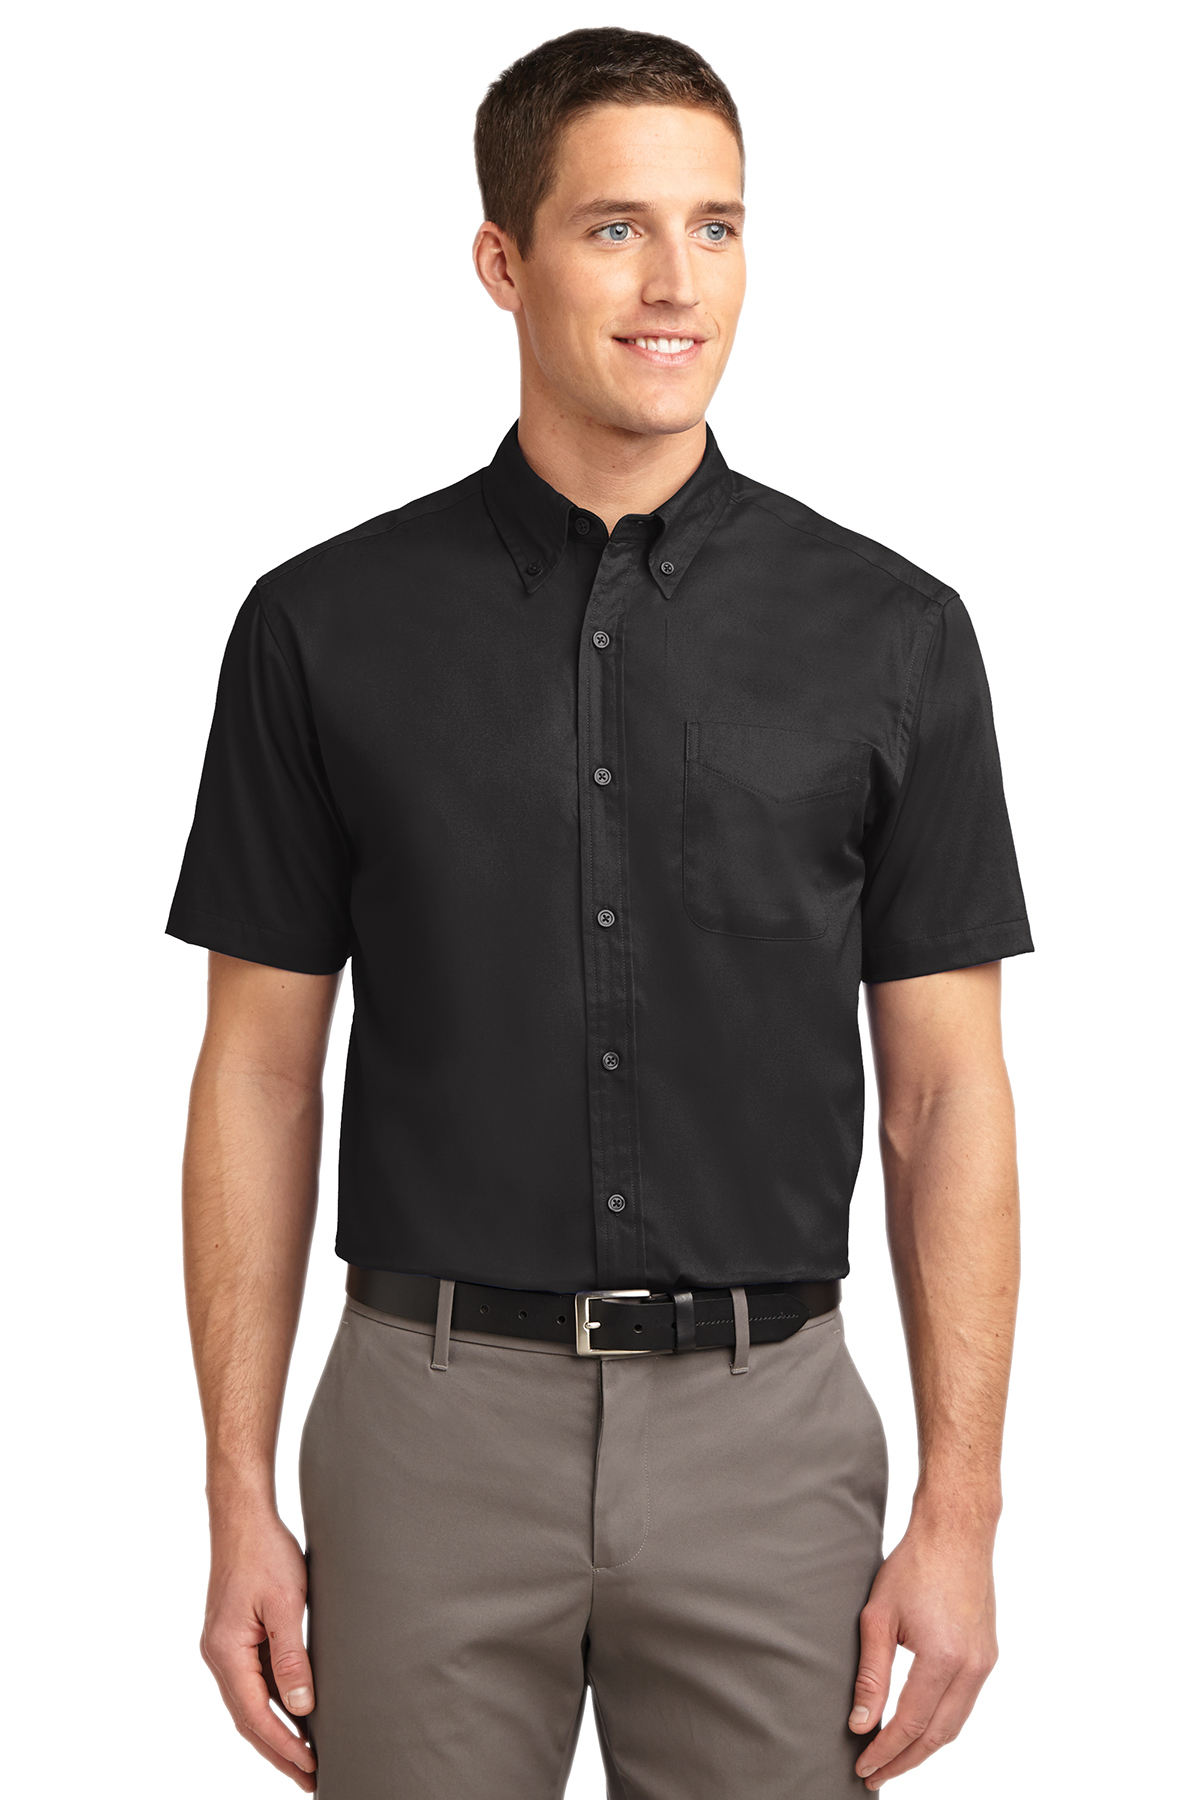 S508-6XL - Port Authority Easy Care-Short Sleeved Shirt